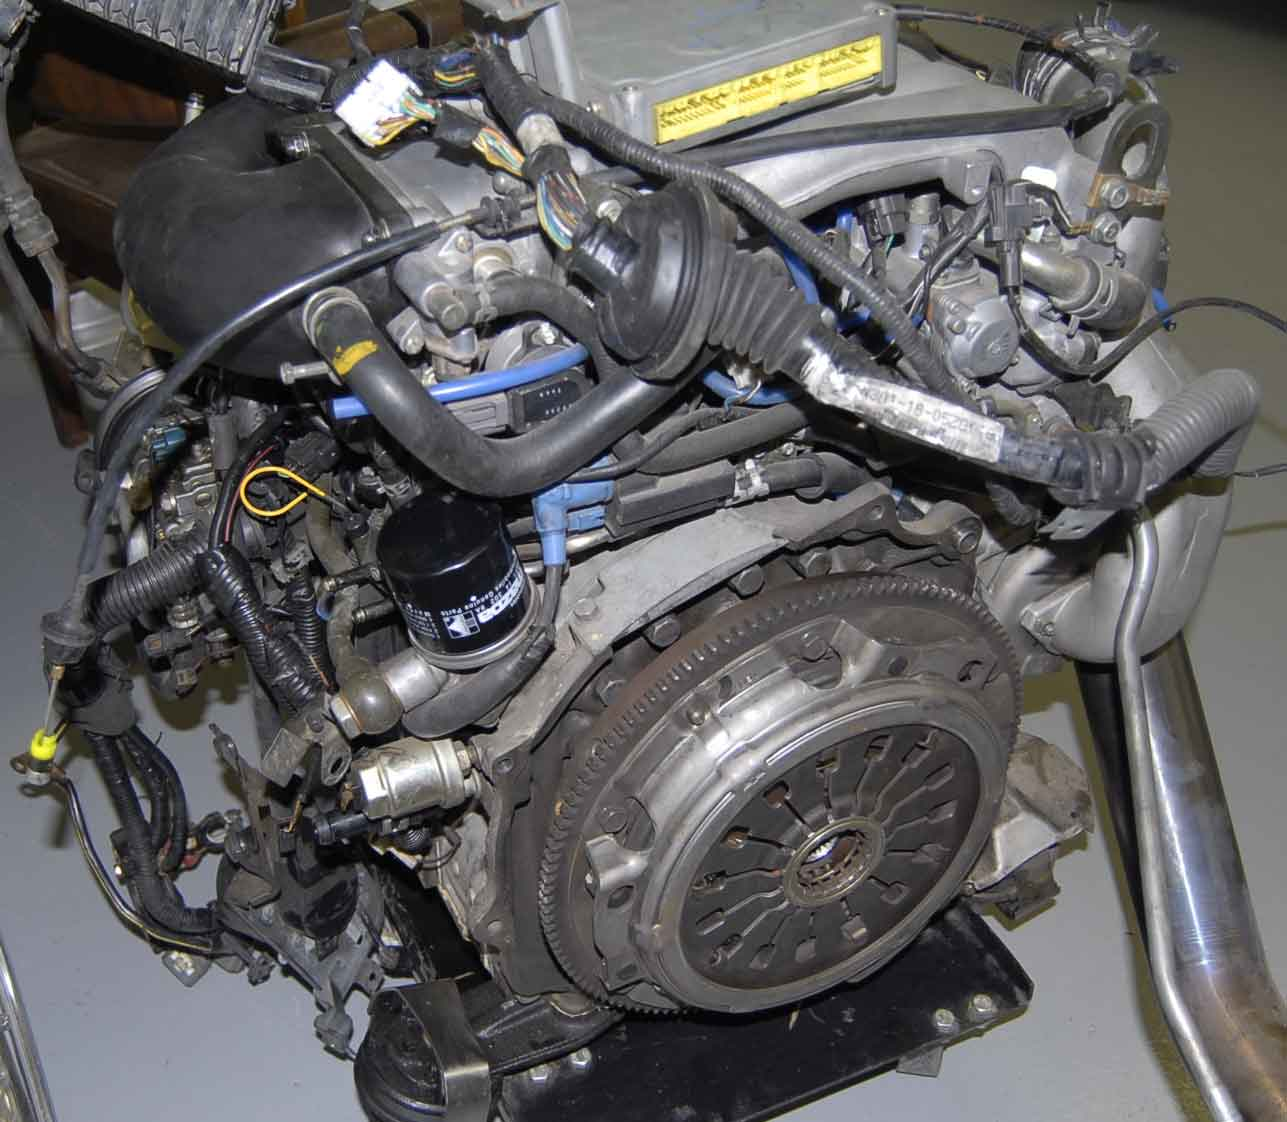 Rx7 Engine Upgrades: Mazda Rotary Engines And Parts